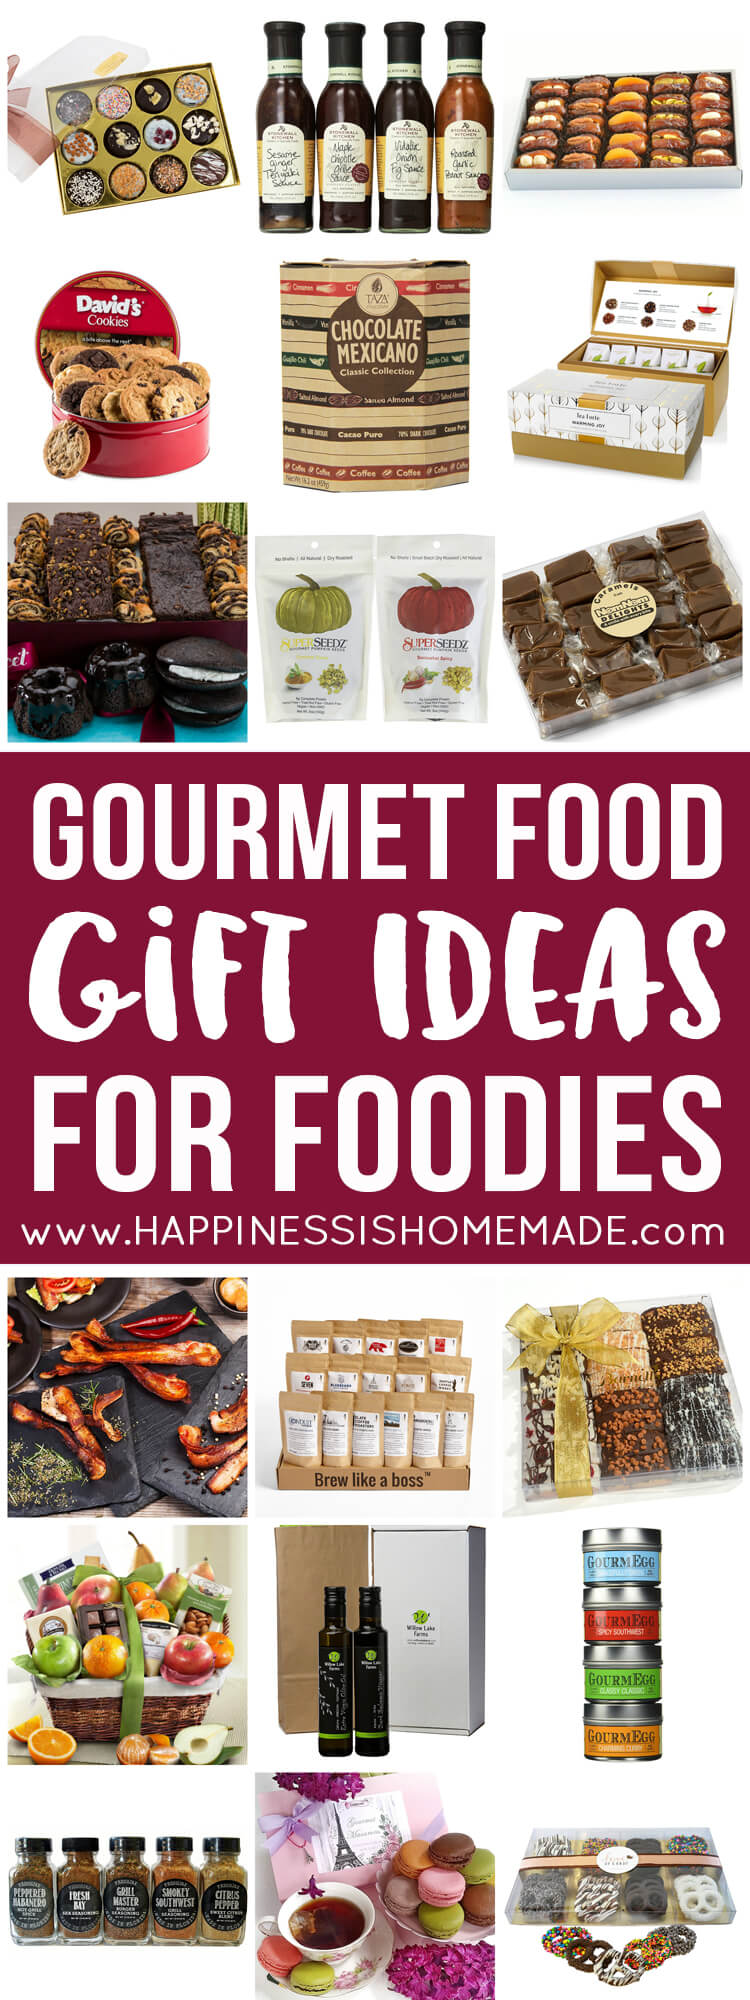 gourmet-food-gift-ideas-for-foodies